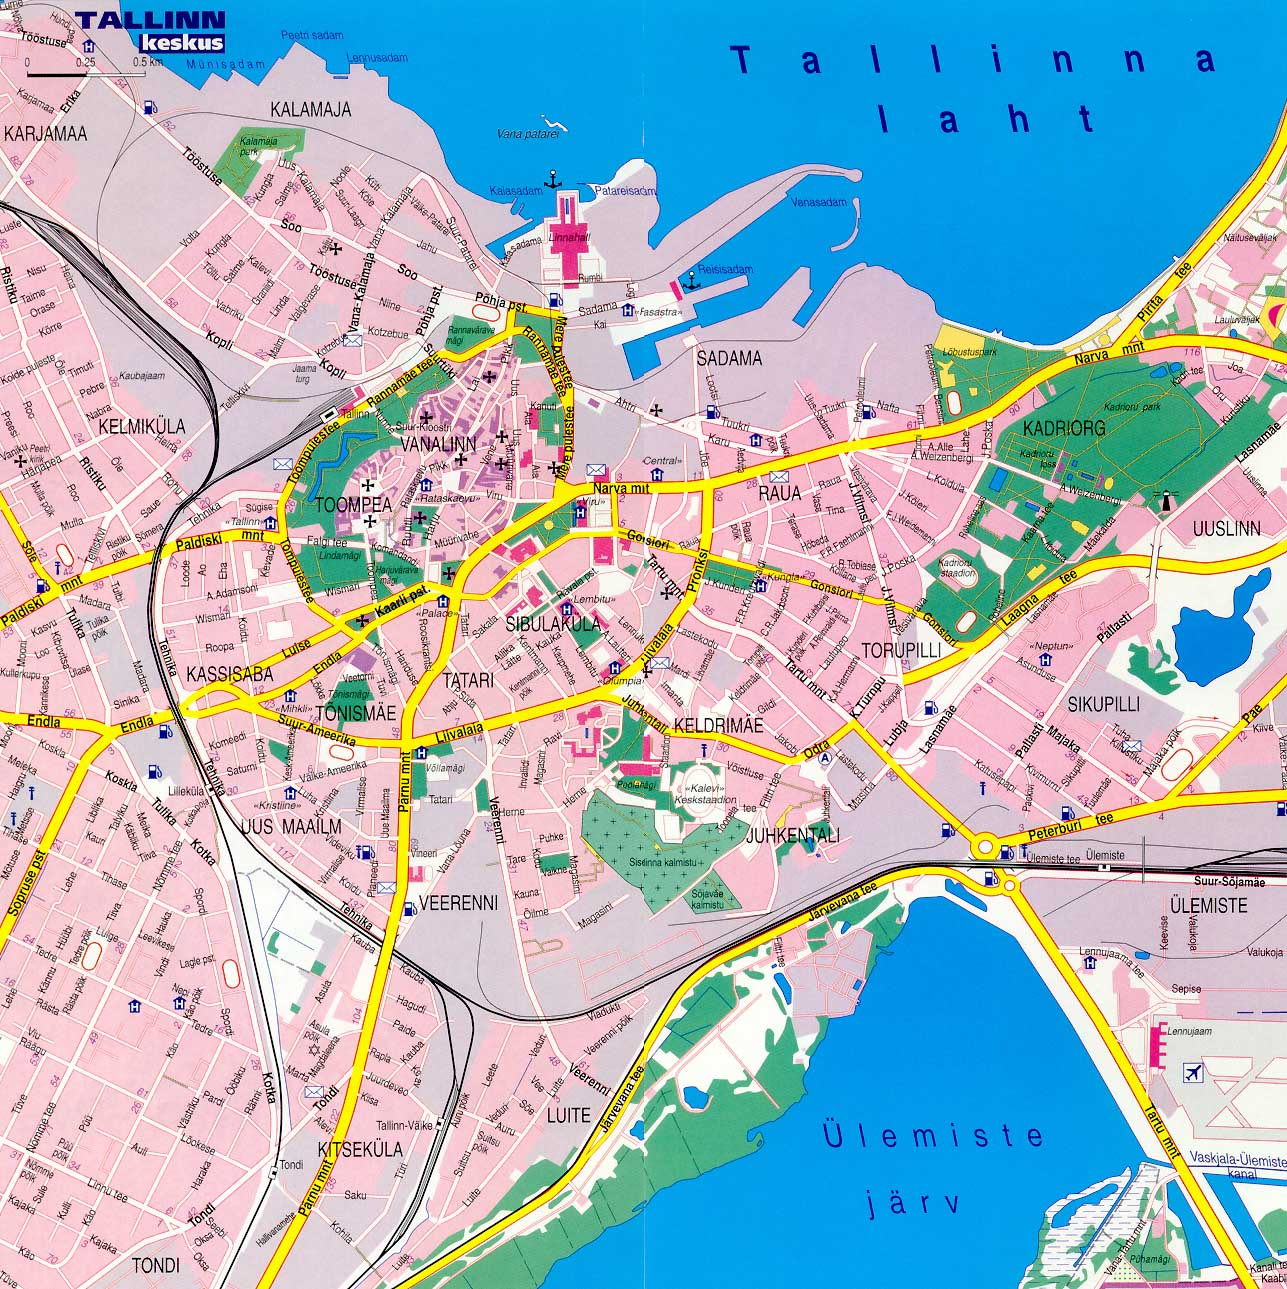 Tallinn Tram Map Plugin Tolge